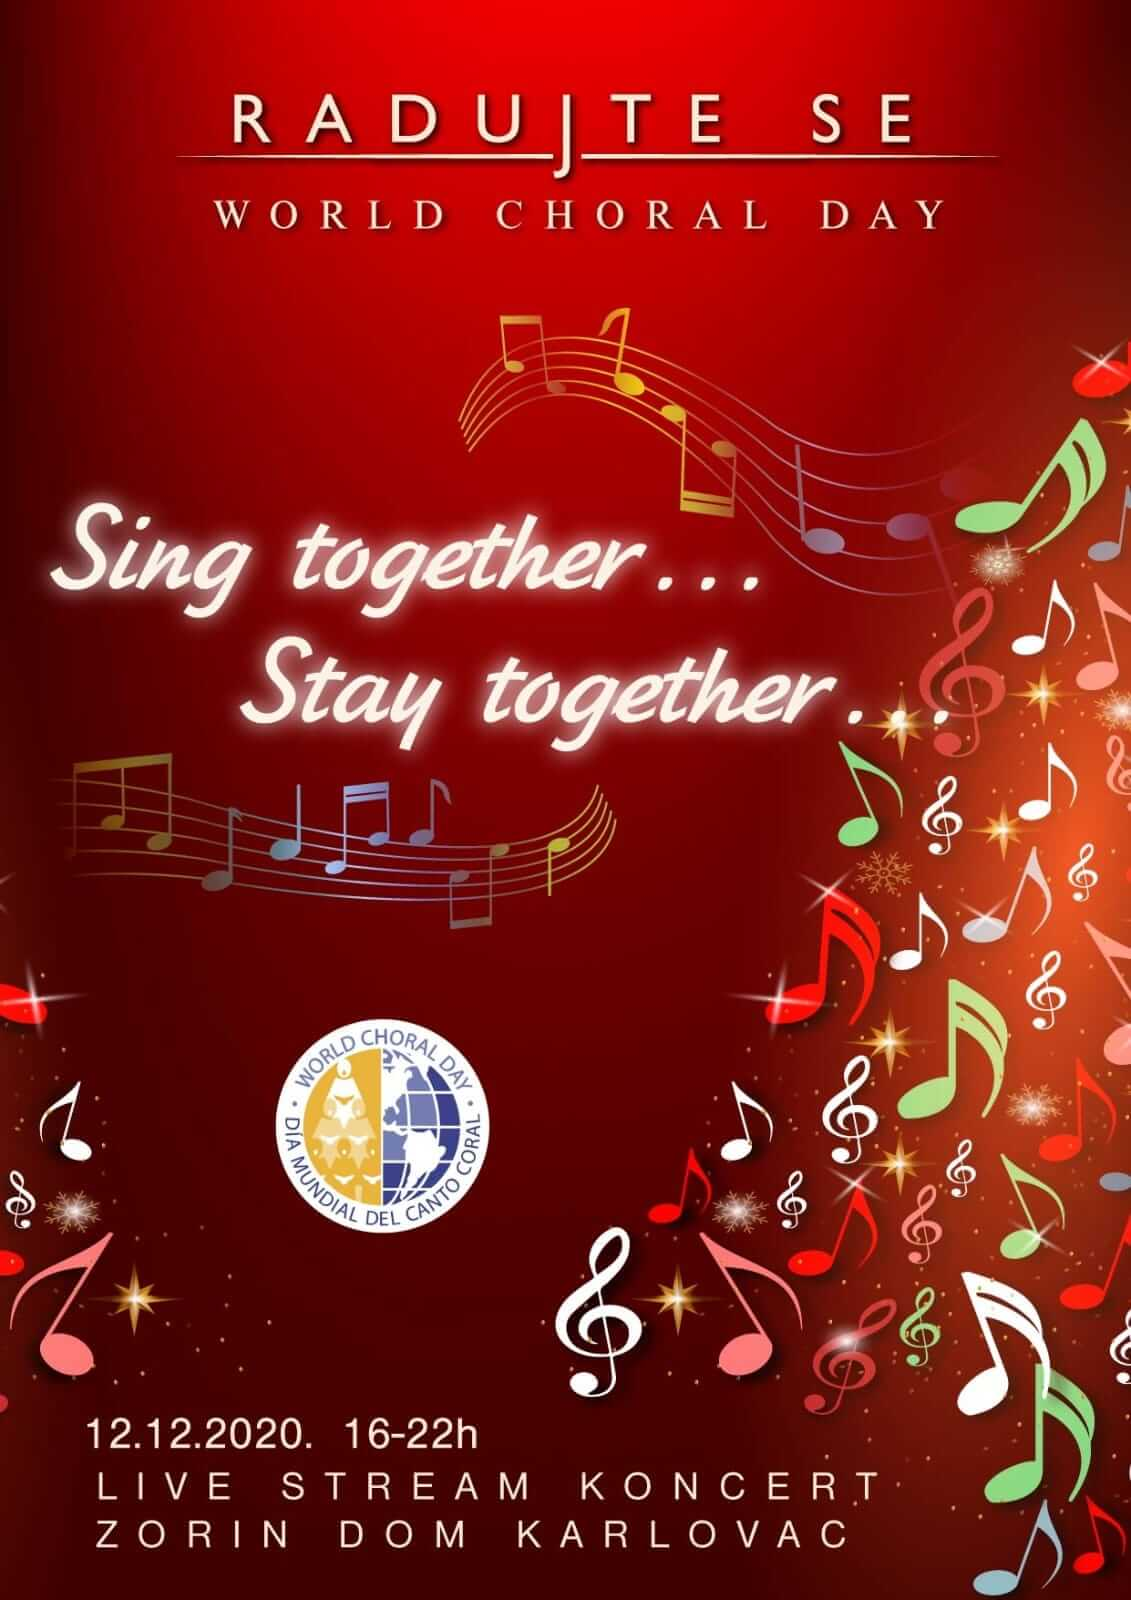 Radujte se narodi-World Choral Day-Song thogether,stay thogheter